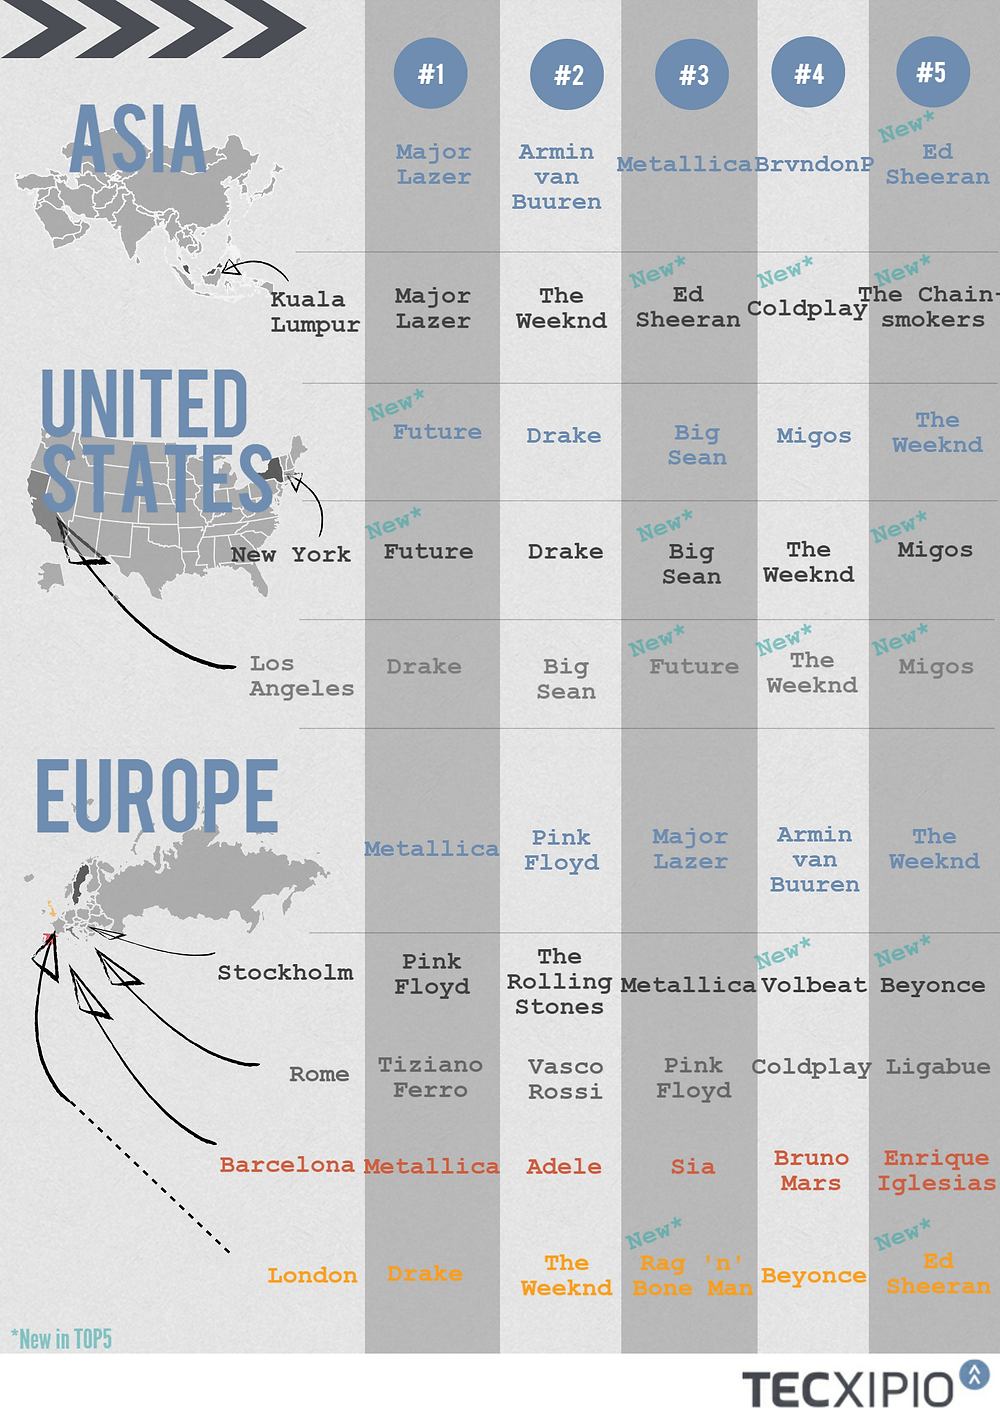 TECXIPIO infographic about the regional music artist charts. It compares the top5 music artists of different regions and cities